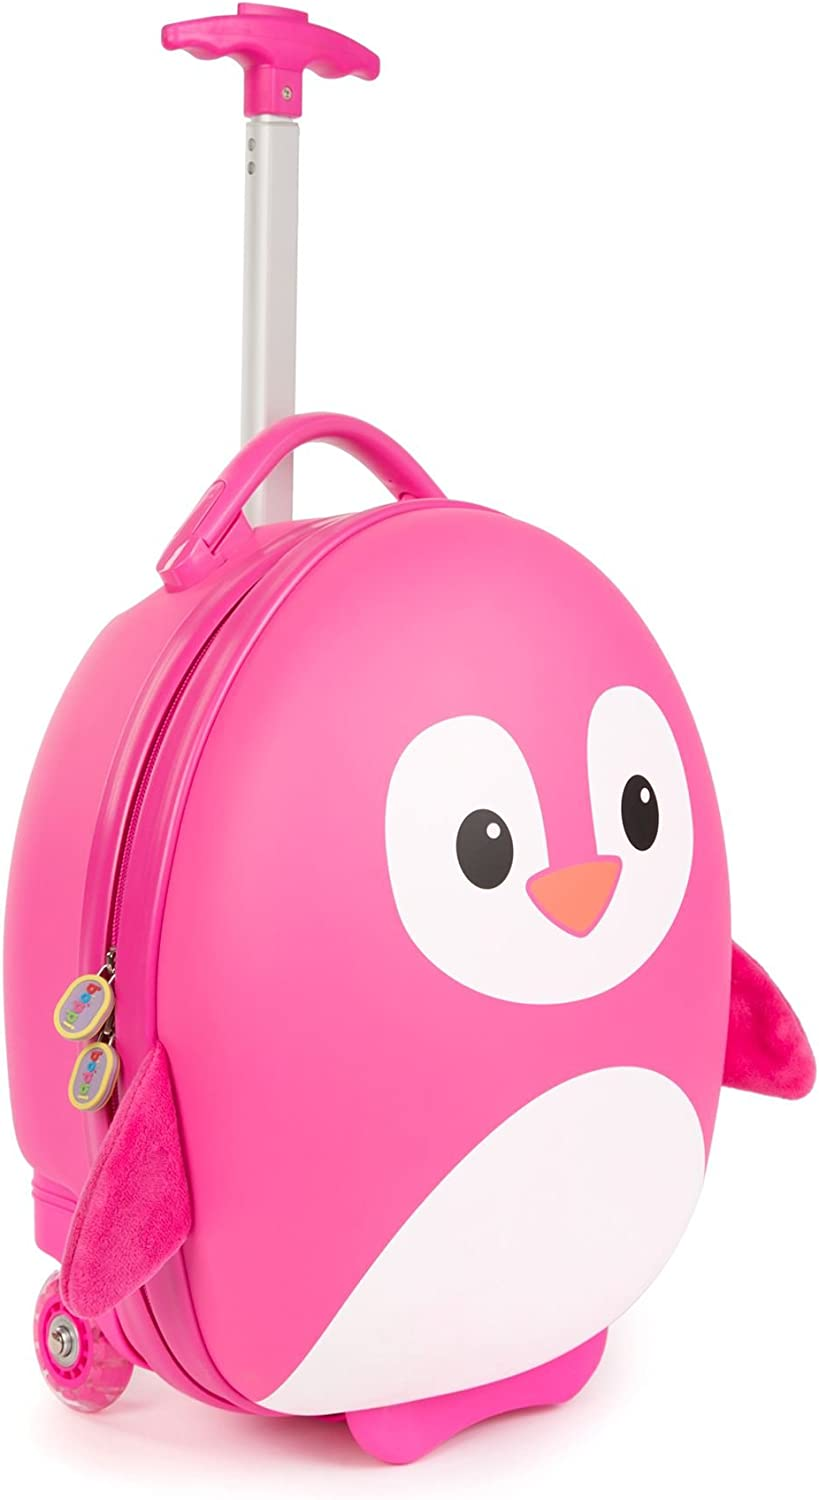 Boppi Tiny Trekker Kids Luggage Travel Suitcase Carry On Cabin Bag Holiday Pull Along Trolley Lighweight Wheeled Holdall 17 Litre Hand Case – Pink Penguin